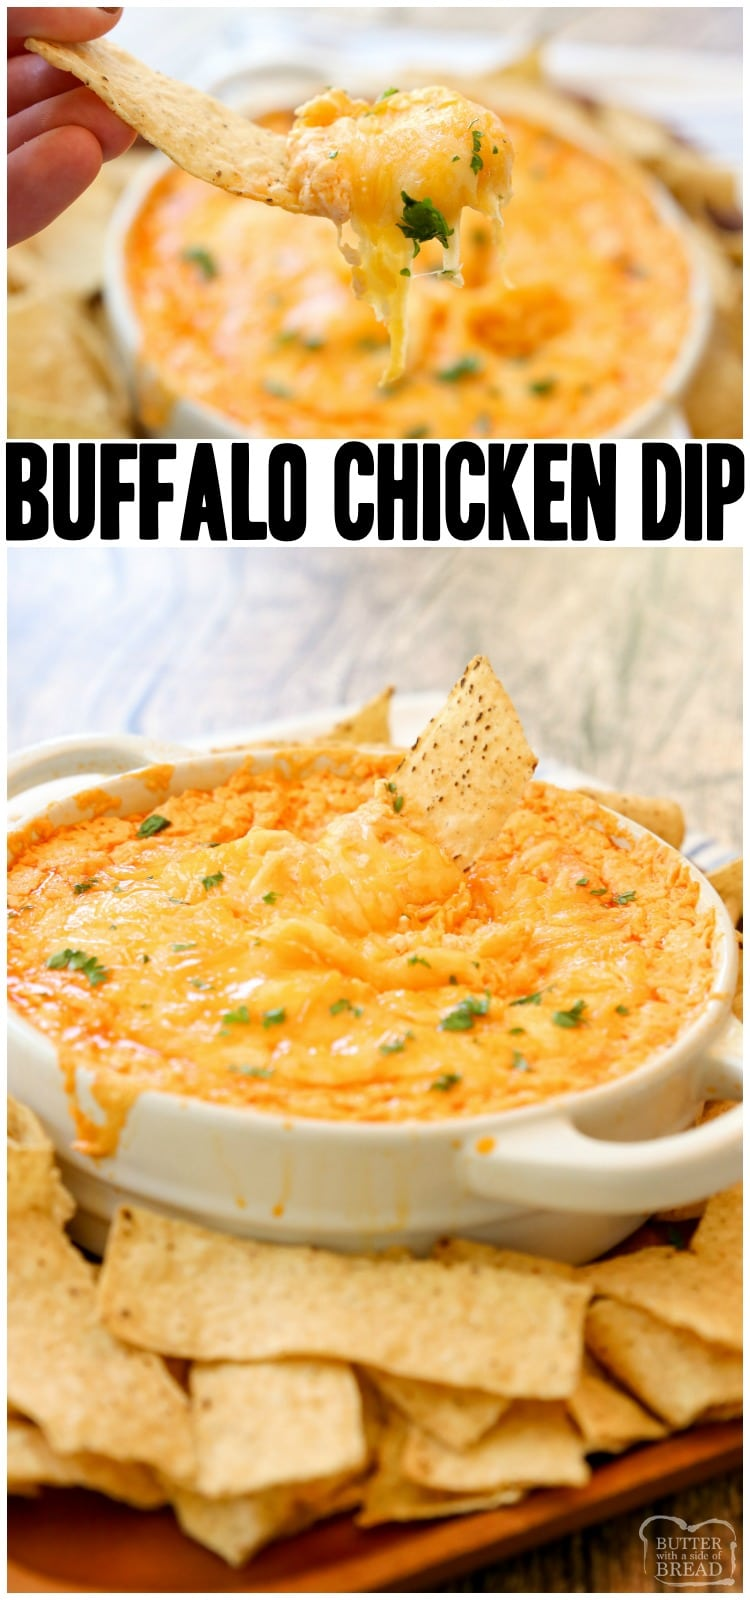 Buffalo Chicken Dip Recipe made with 3 cheeses, juicy chicken and a flavorful Buffalo sauce makes an awesome chicken wing dip with a bit of a kick. Easy Buffalo Chicken Dip is an easy appetizer perfect for game day.